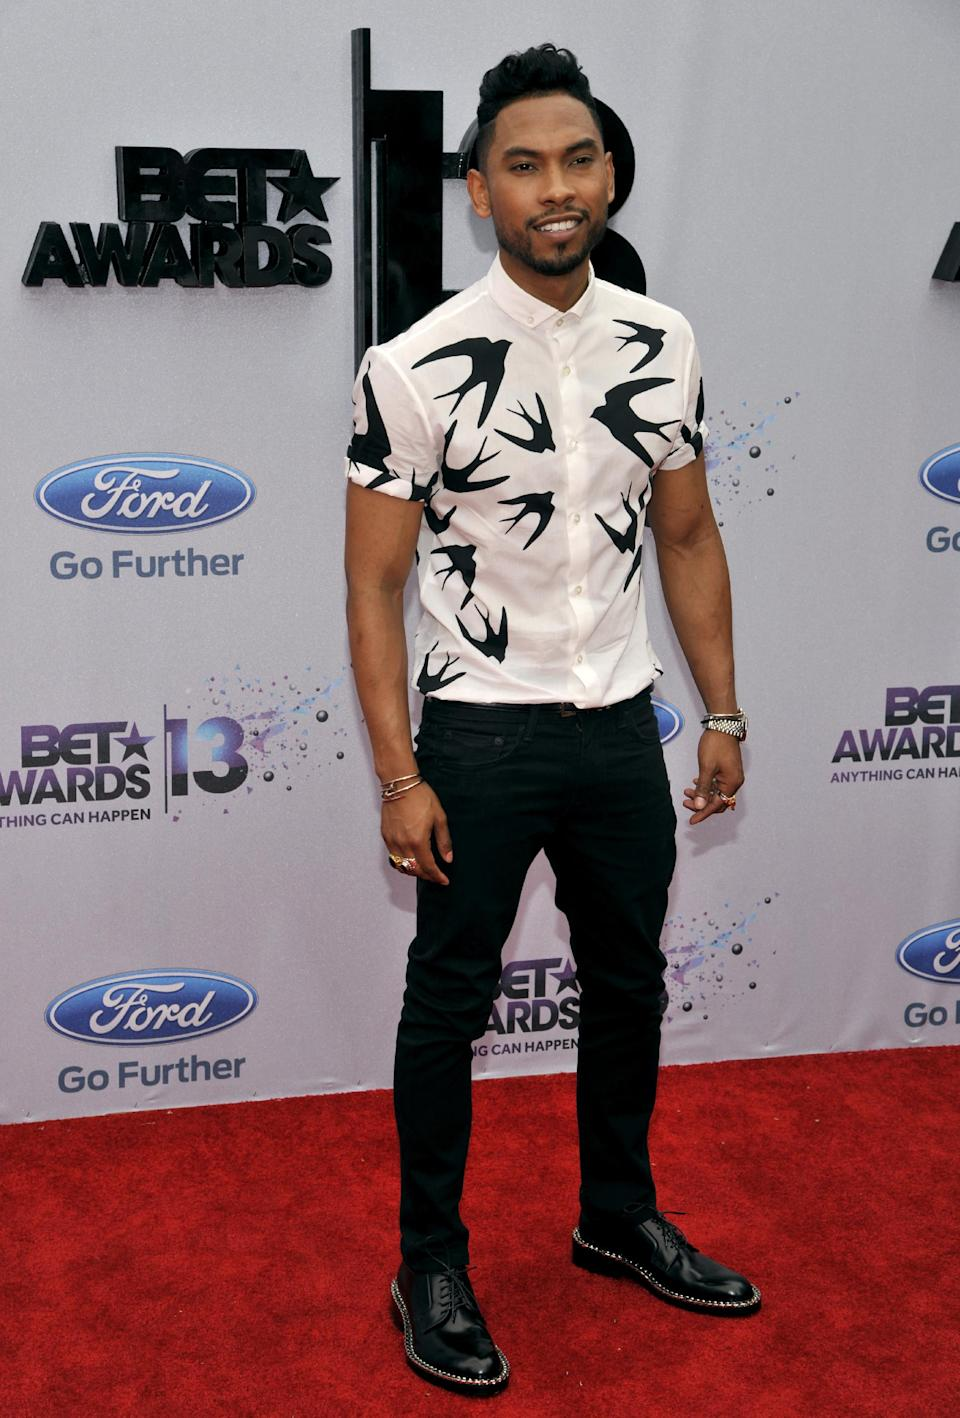 Miguel Jontel Pimentel arrives at the BET Awards at the Nokia Theatre on Sunday, June 30, 2013, in Los Angeles. (Photo by Chris Pizzello/Invision/AP)